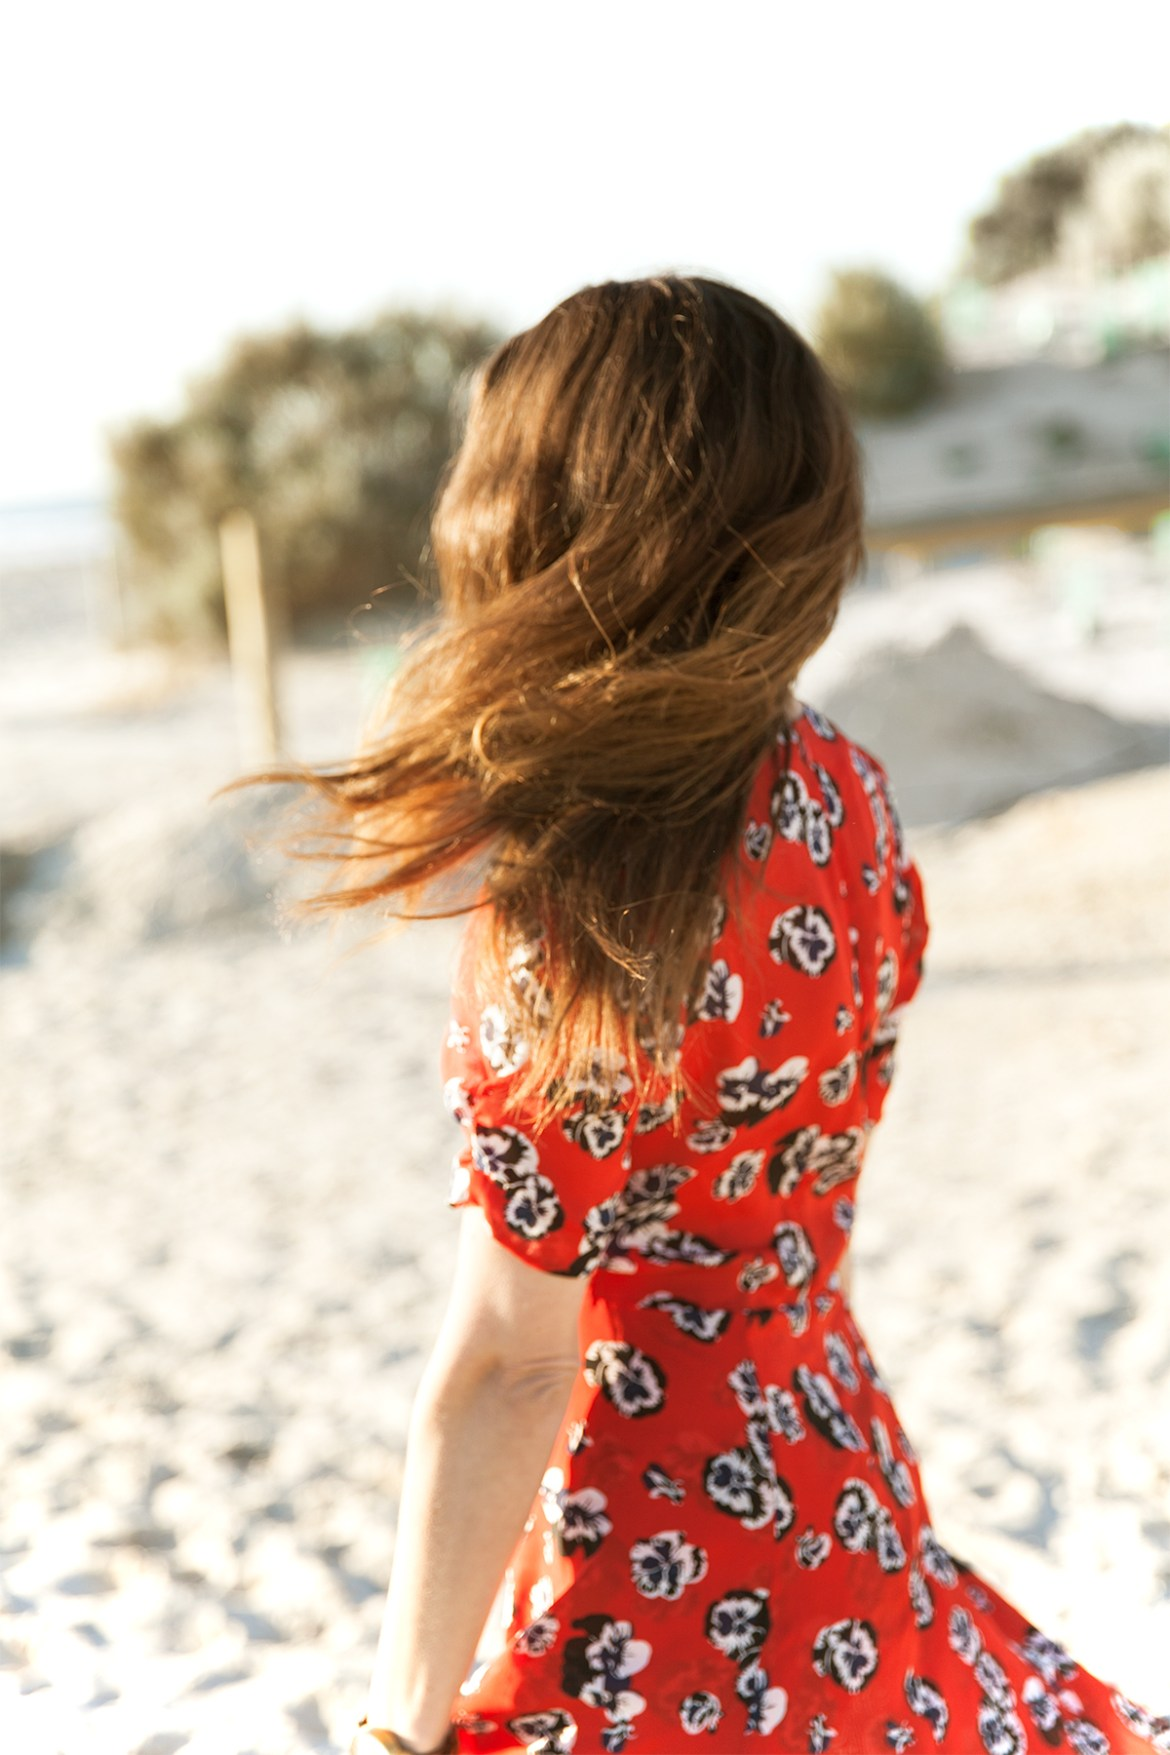 Realisation Par the Ozzie dress in Pansy print worn by Australian fashion blogger Jenelle Witty from Inspiring Wit